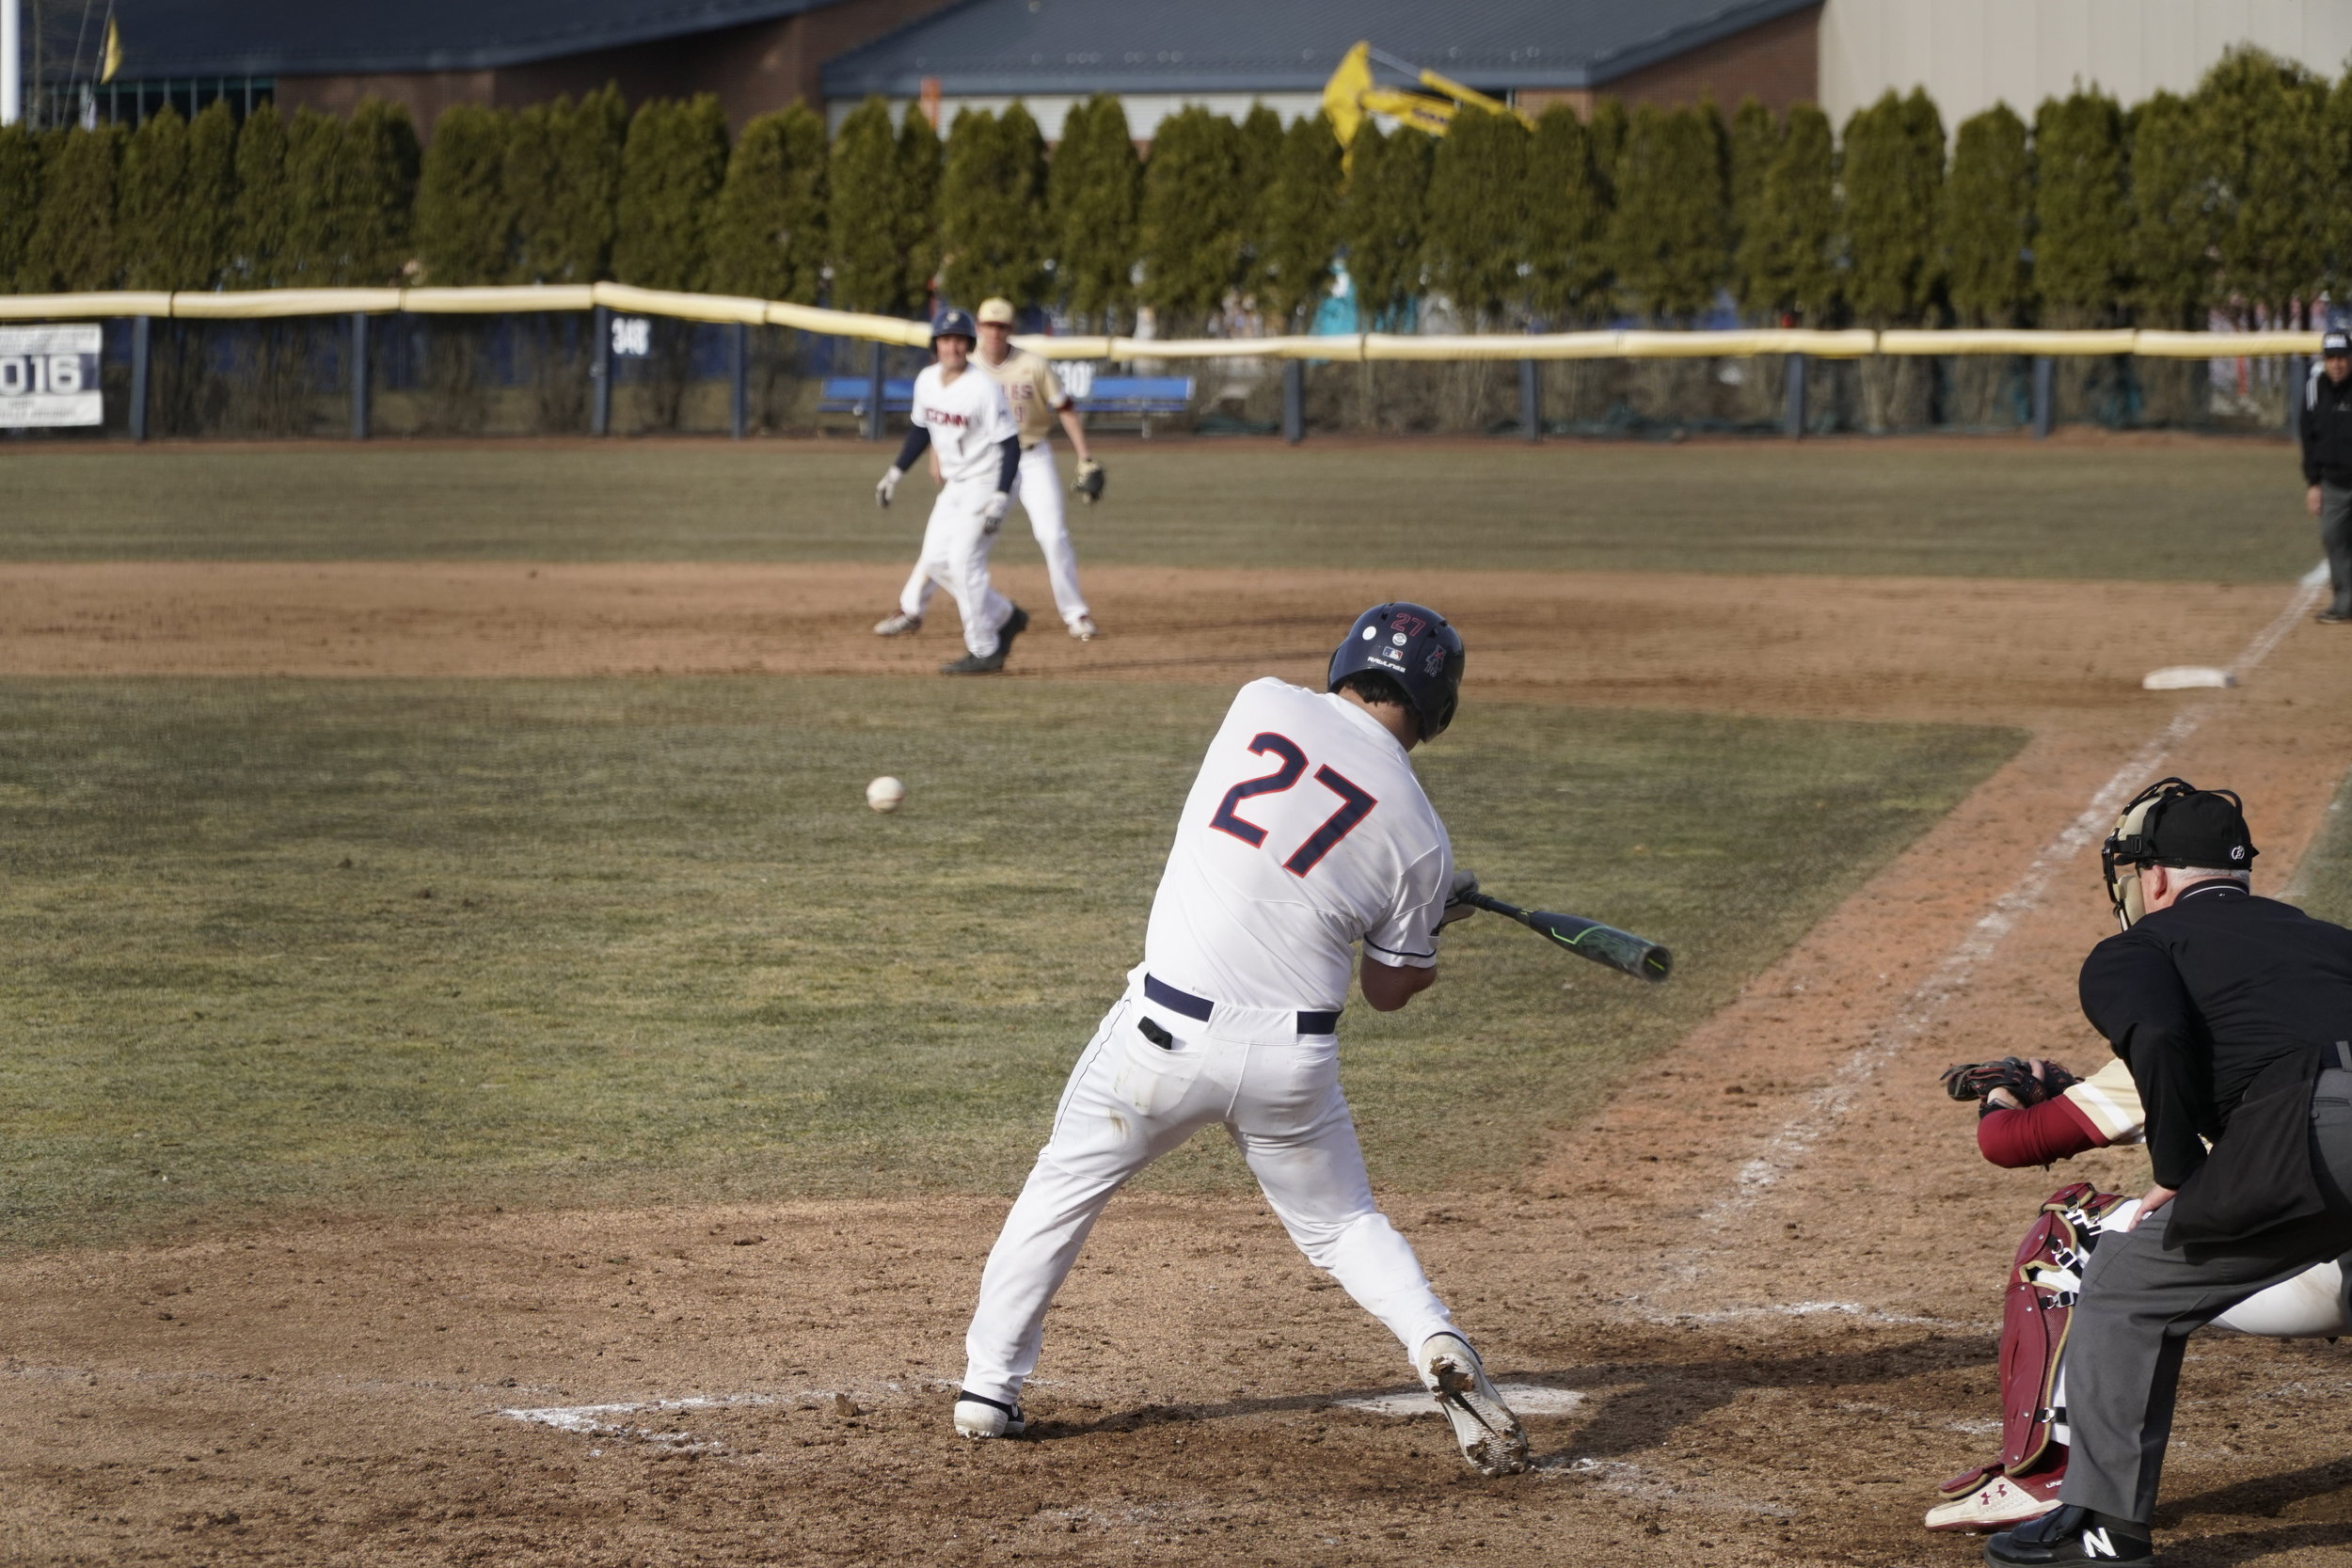 The Huskies won 3-1 to the Boston College Eagles on Wednesday. Their next home game is on 4/2, playing against Fairfield University at the J.O. Christian Field.me game is on 4/2, playing against Fairfield University at the J.O. Christian Field. (Photo by Eric Wang/The Daily Campus)